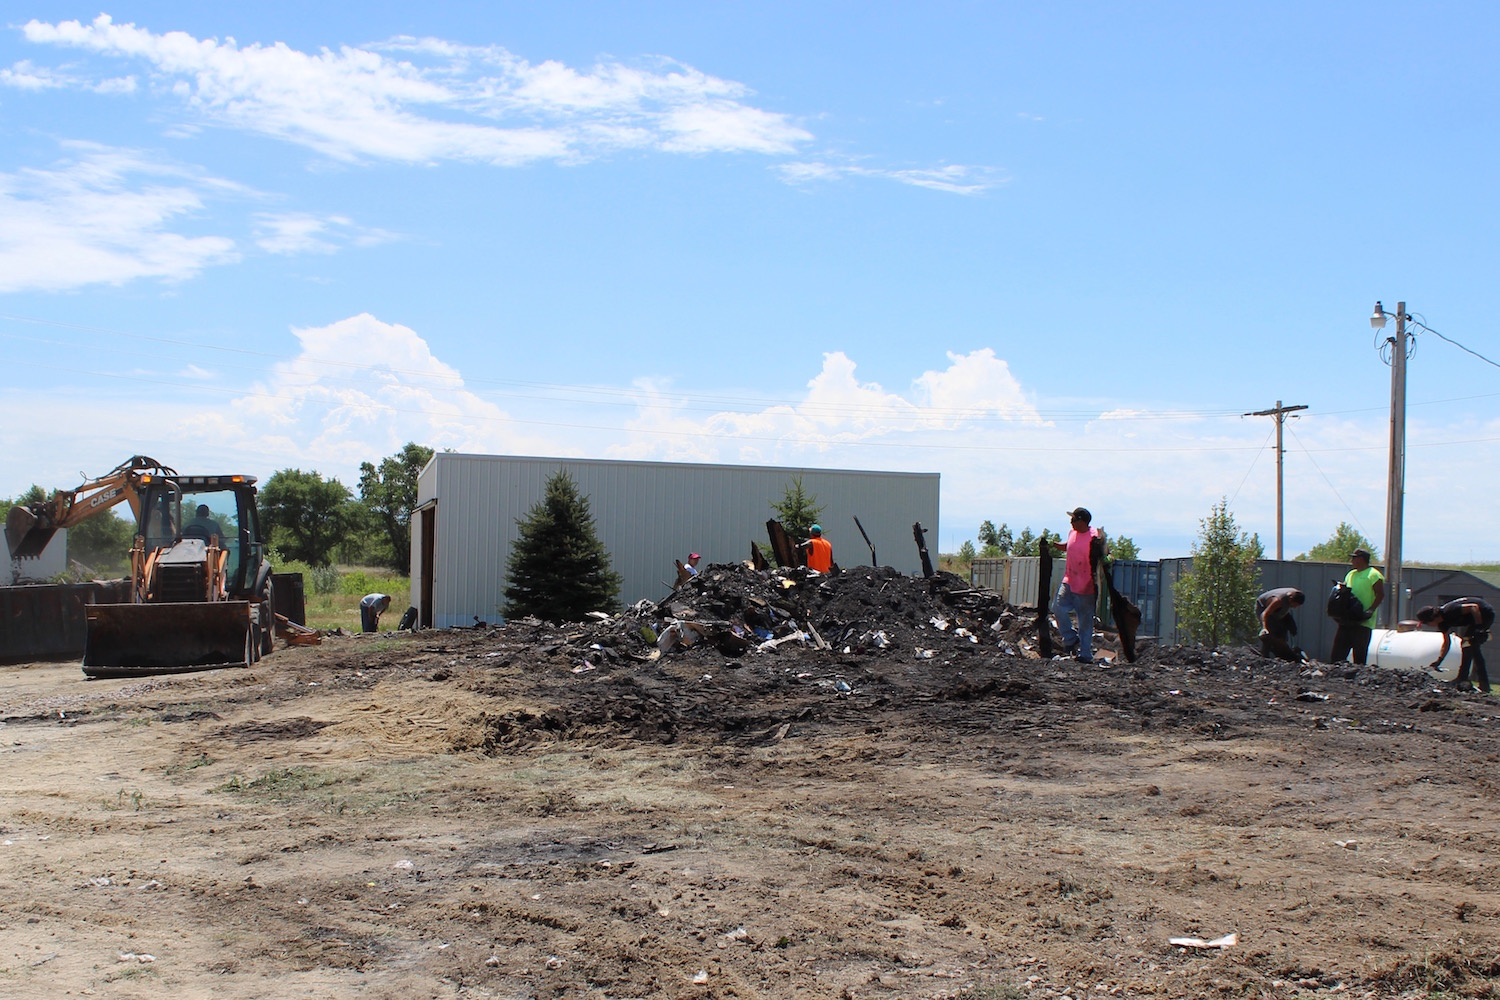 Lakota Country Times: Fire deals huge setback to Rosebud Sioux children's program